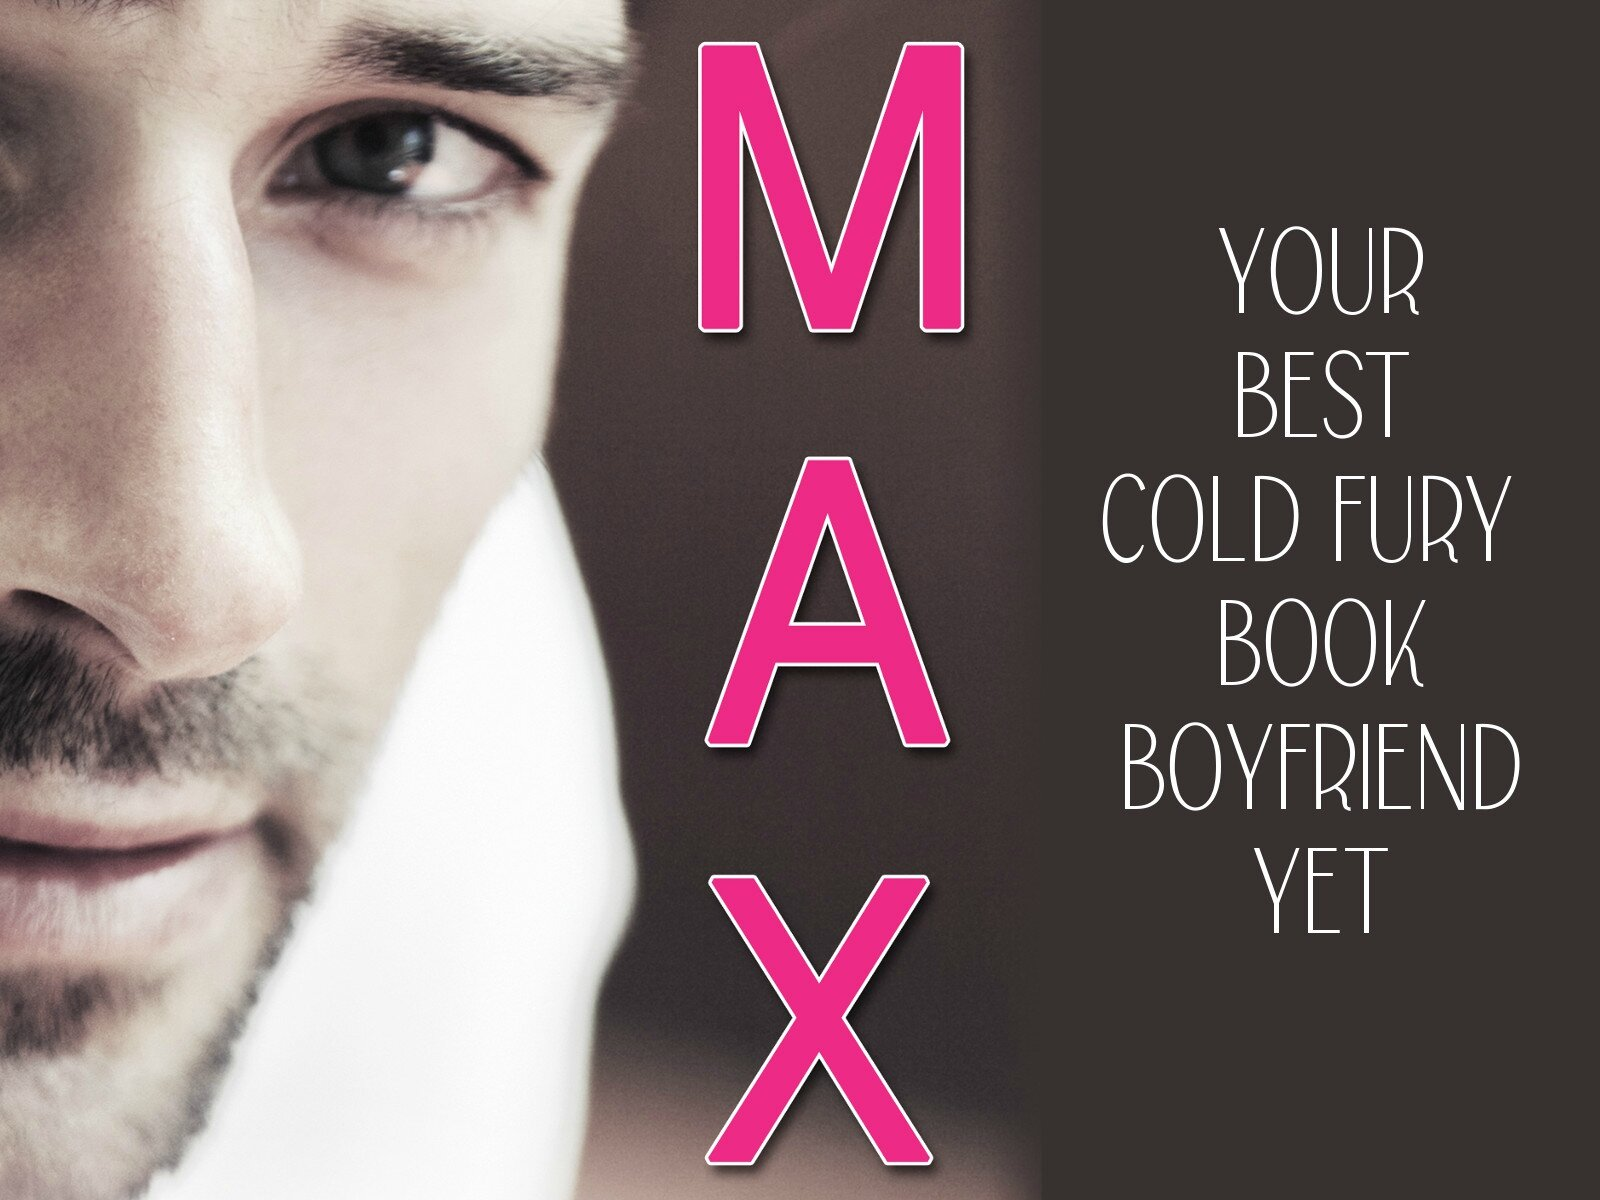 Max (Cold Fury, Book #6) by Sawyer Bennett